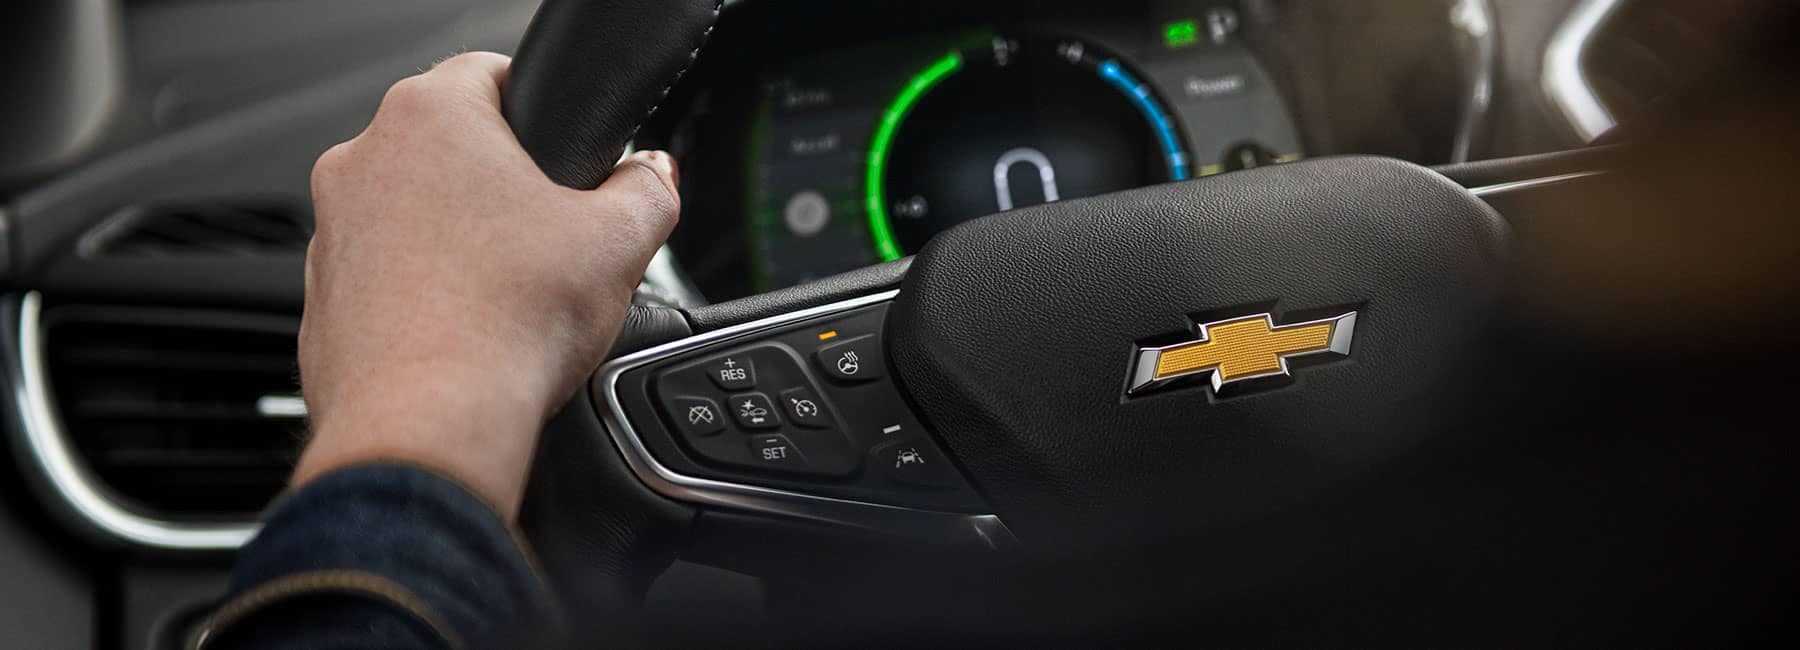 Chevrolet steering wheel and dashboard